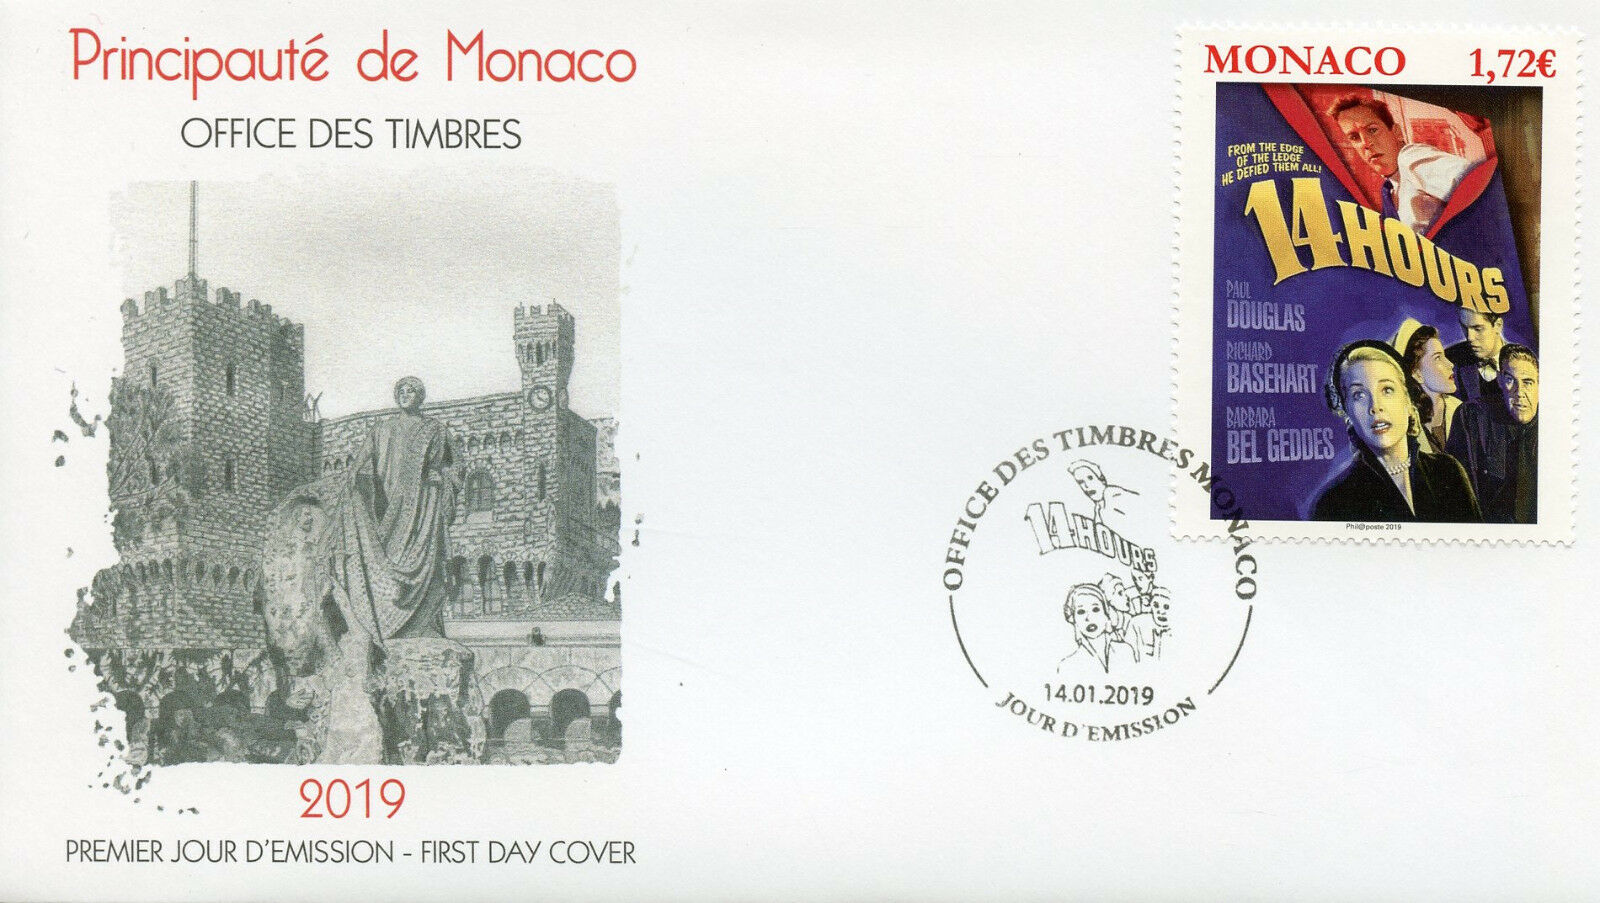 Monaco - Grace Kelly Movies: 14 Hours (January 14, 2019) first day cover